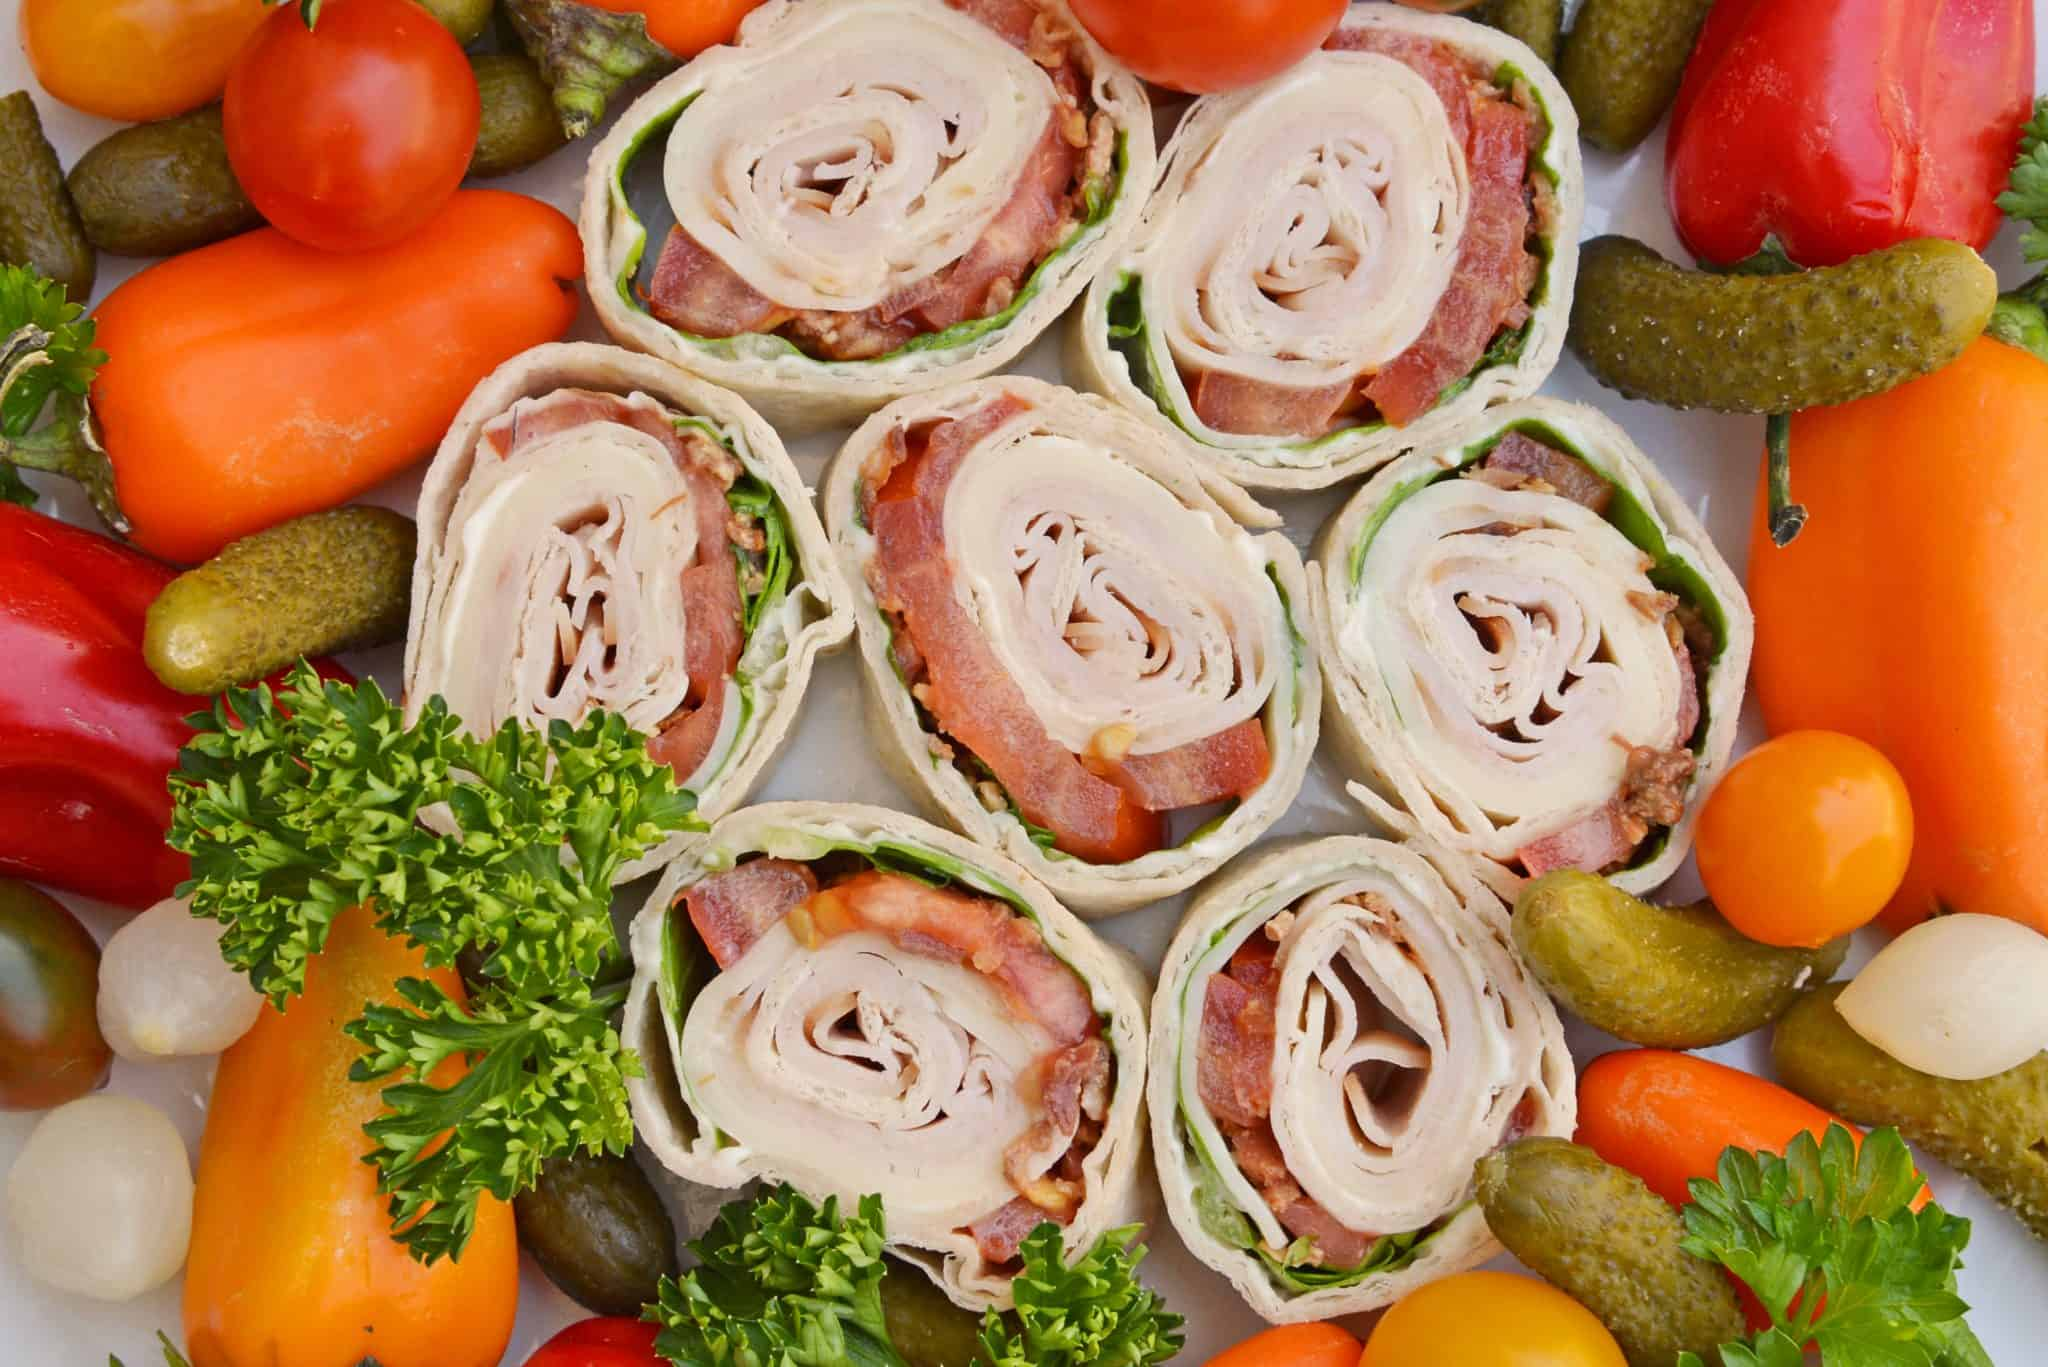 Turkey club pinwheel recipes with veggies on a tray